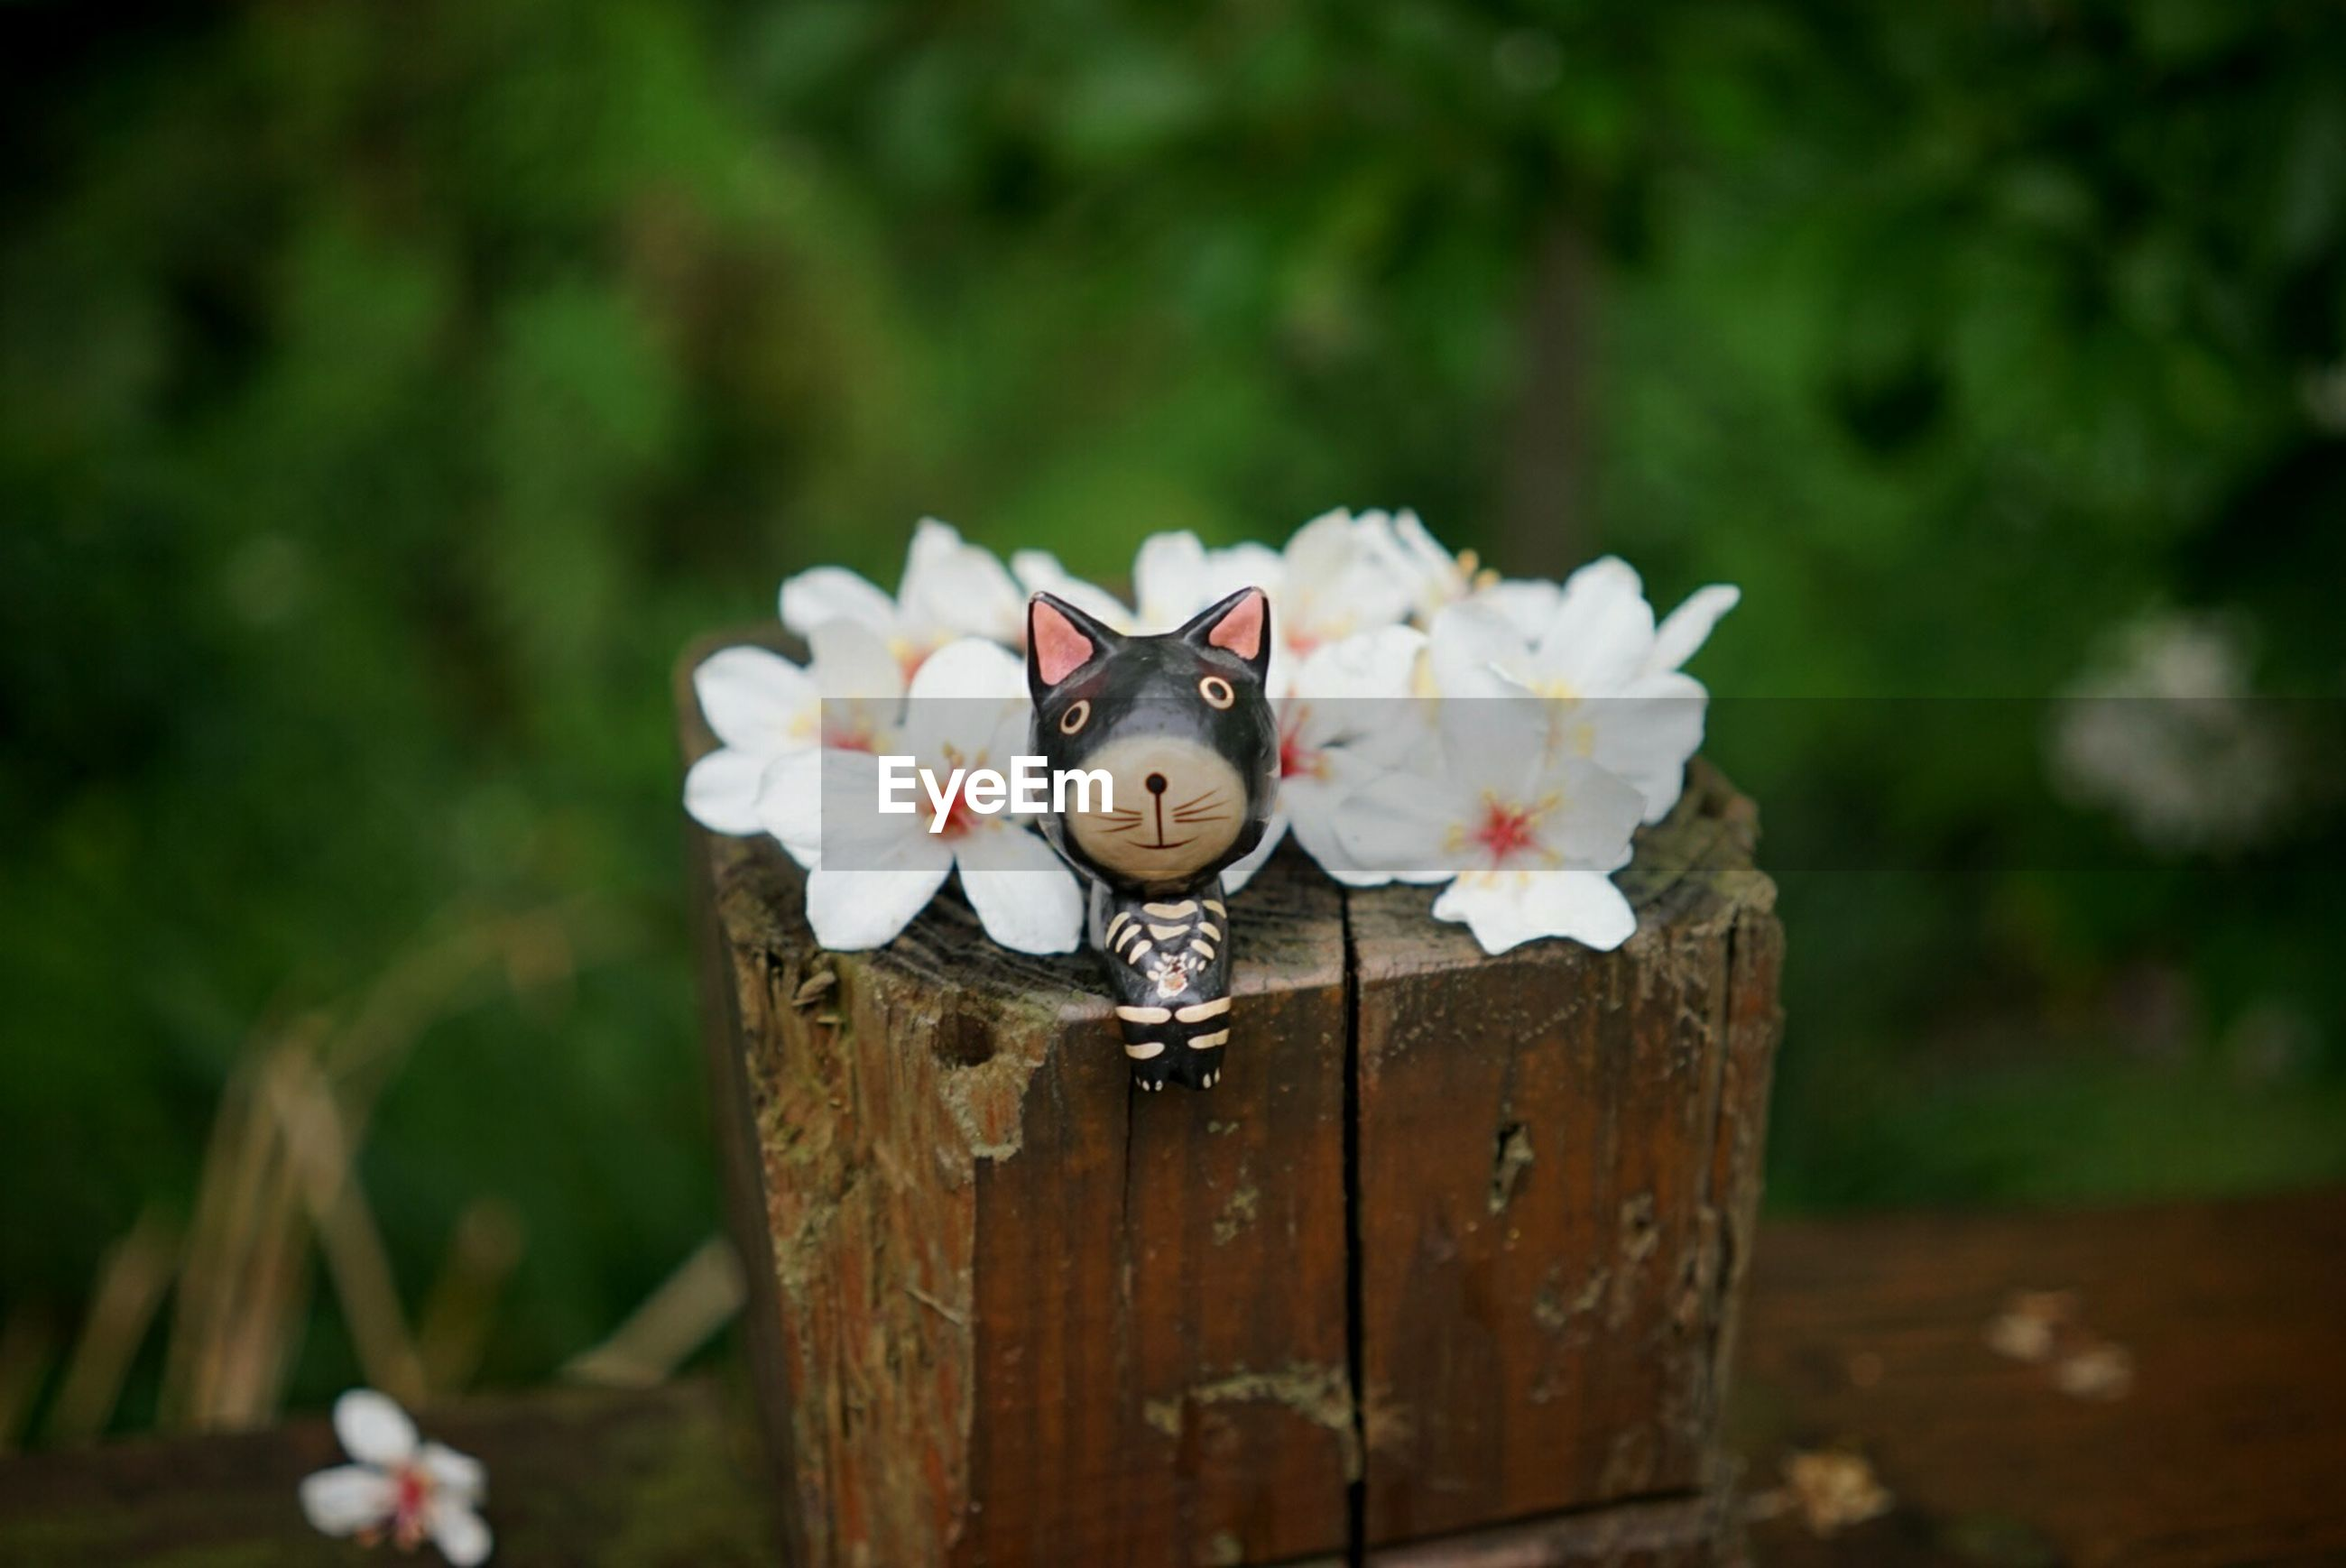 Close-up of cat figurine and white flowers on wood